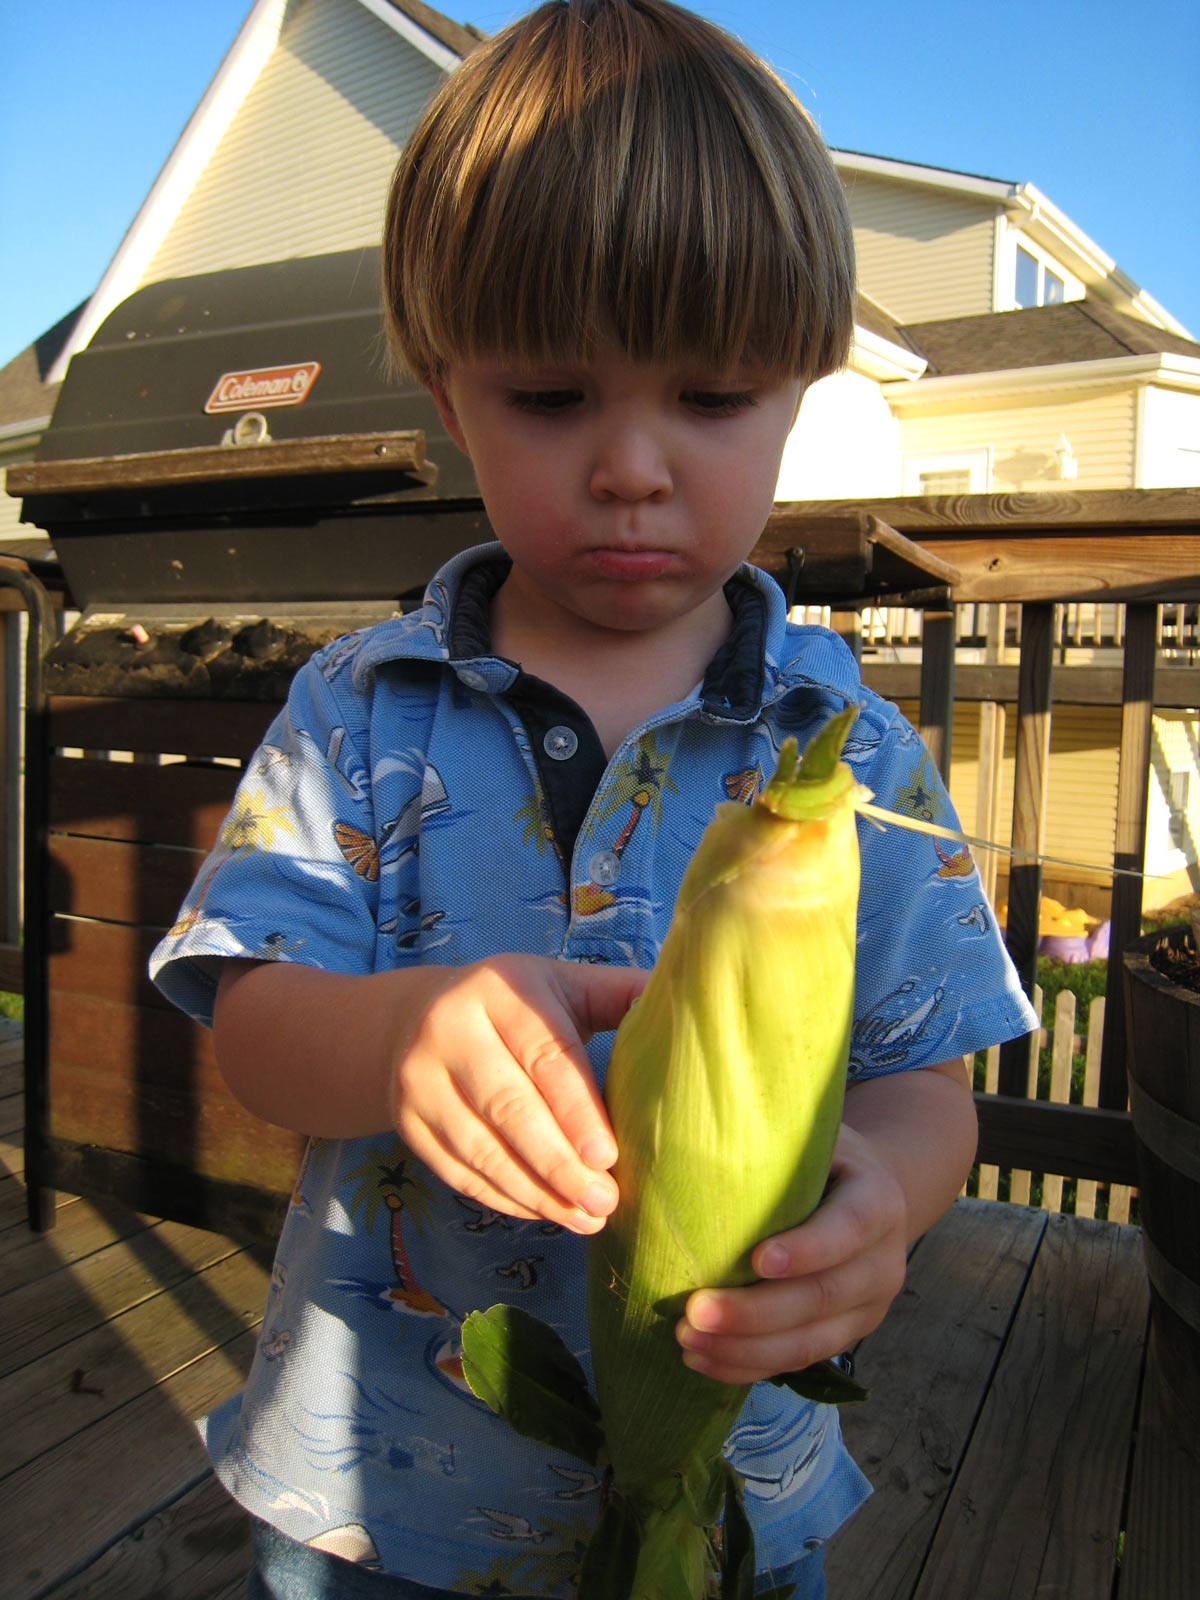 toddler boy on deck holding ear of corn to shuck.